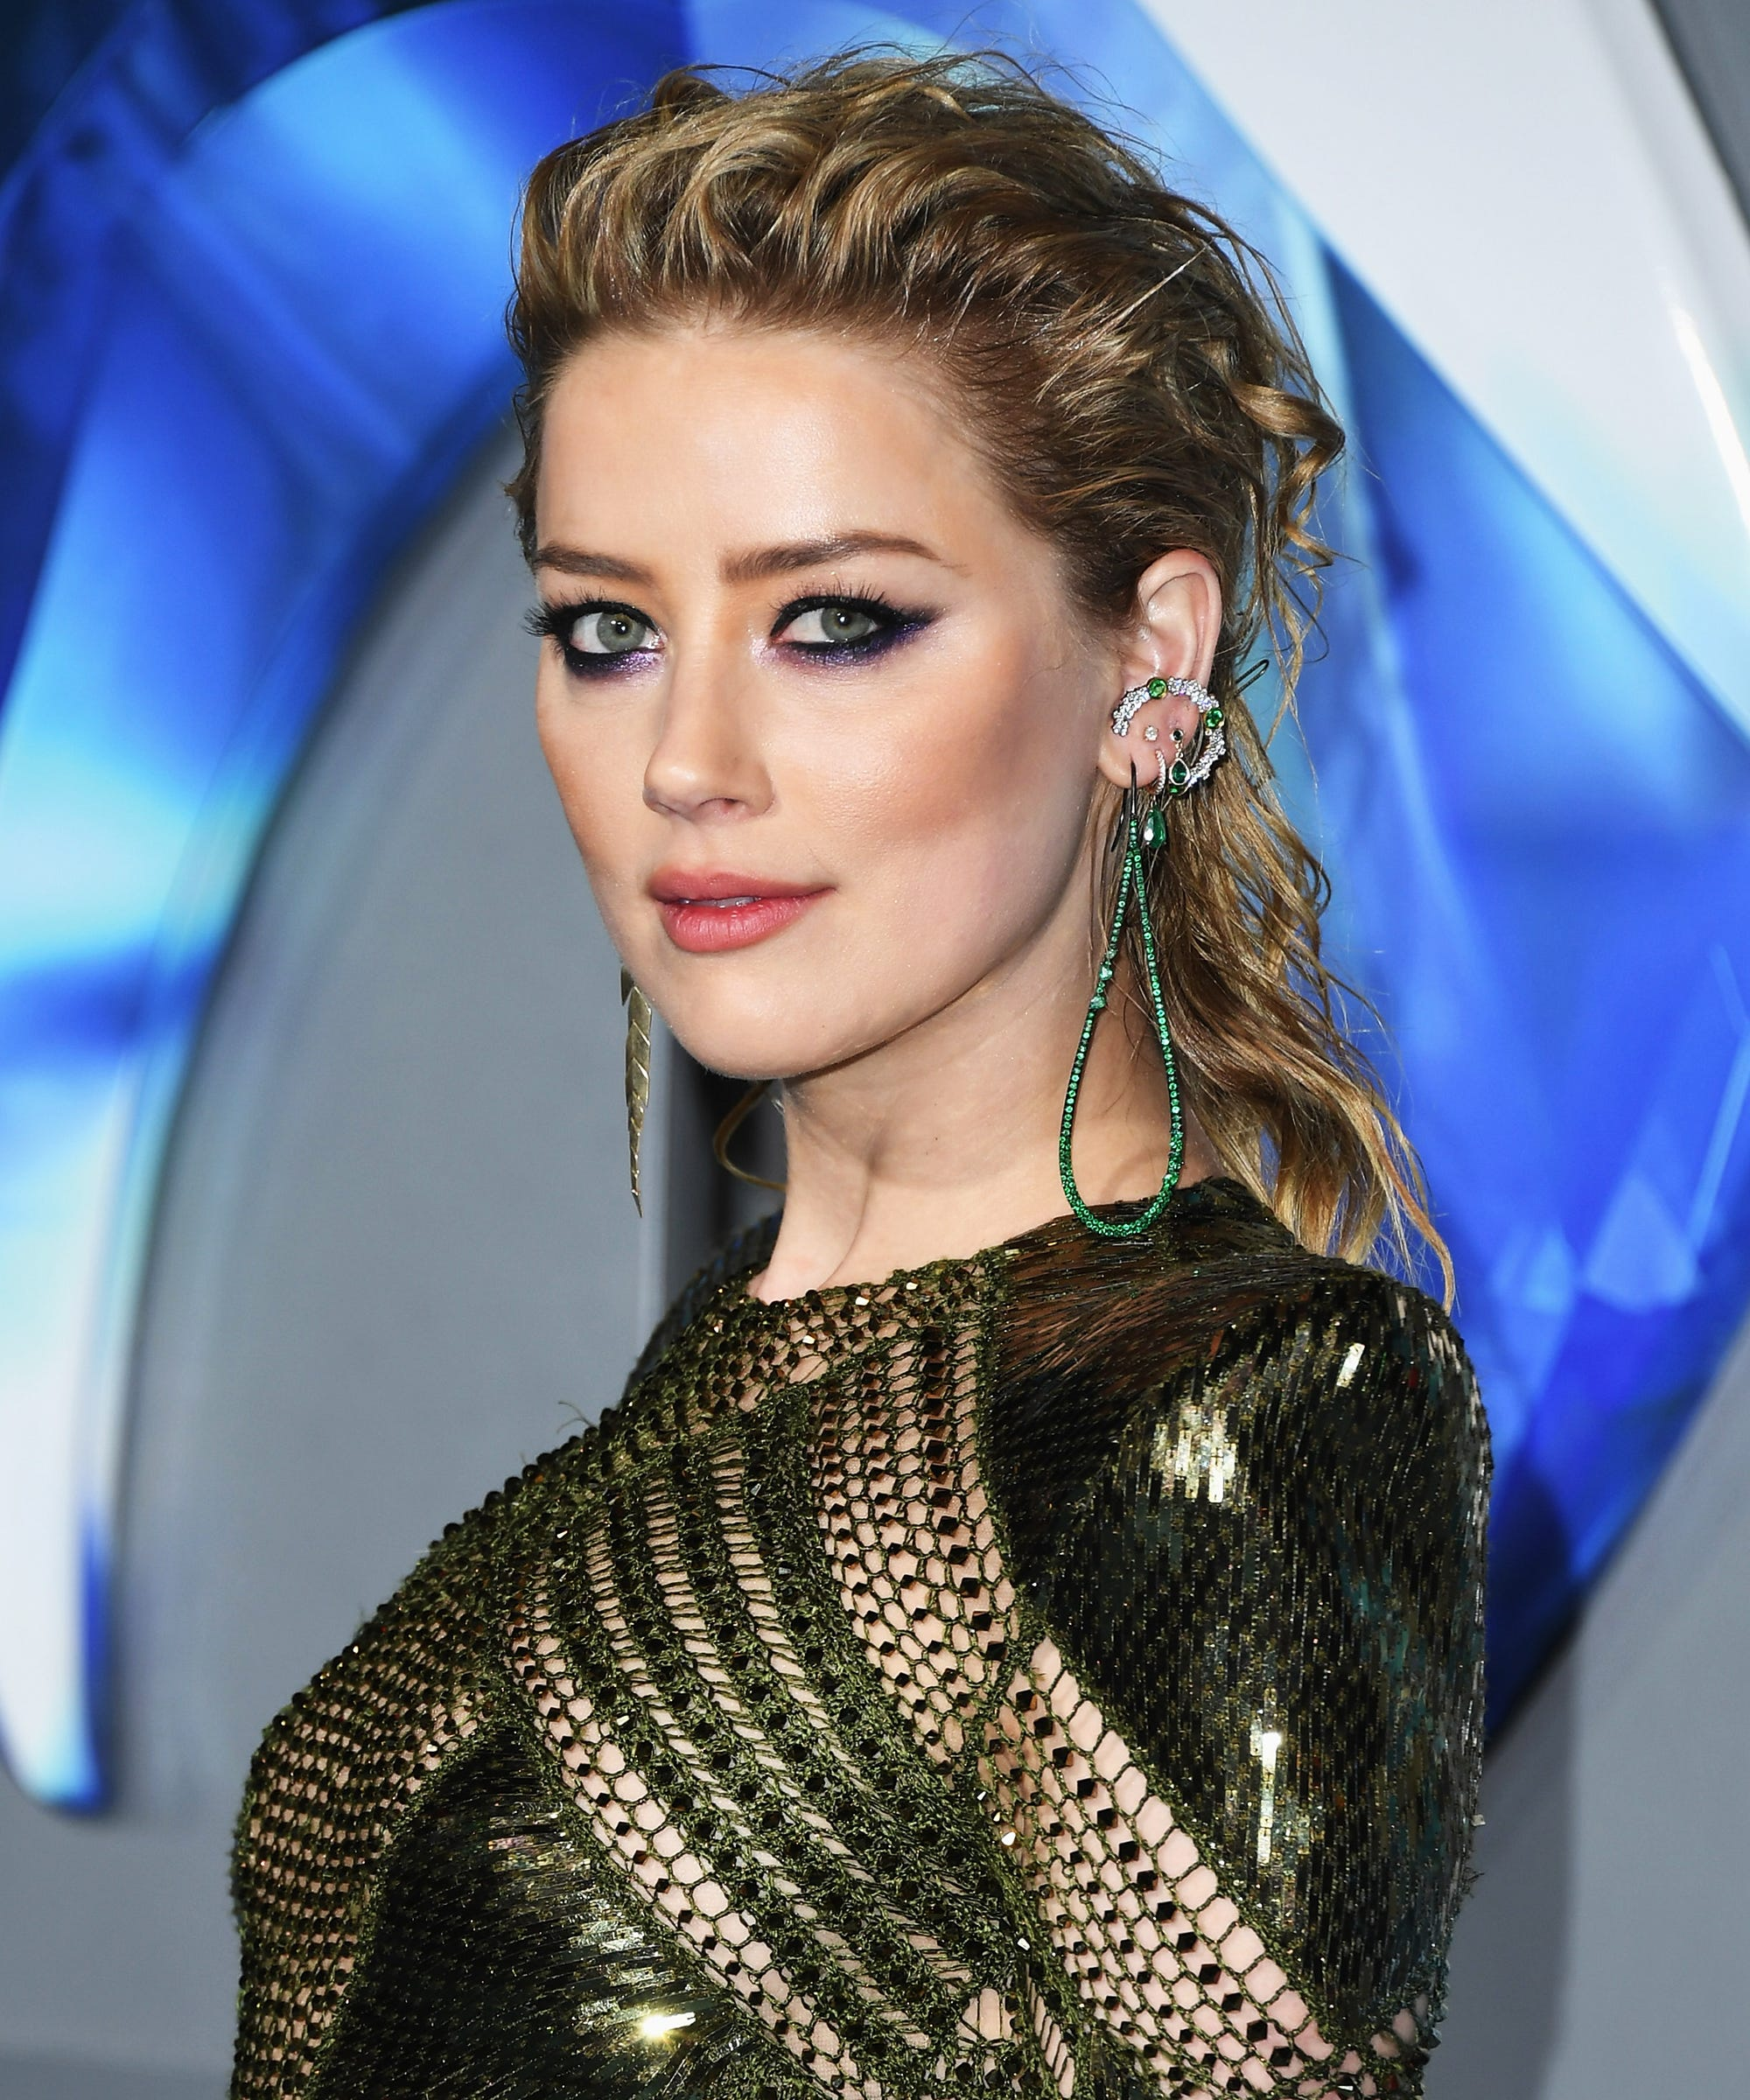 Amber Heard Details More Alleged Abuse By Johnny Depp In New Court Documents